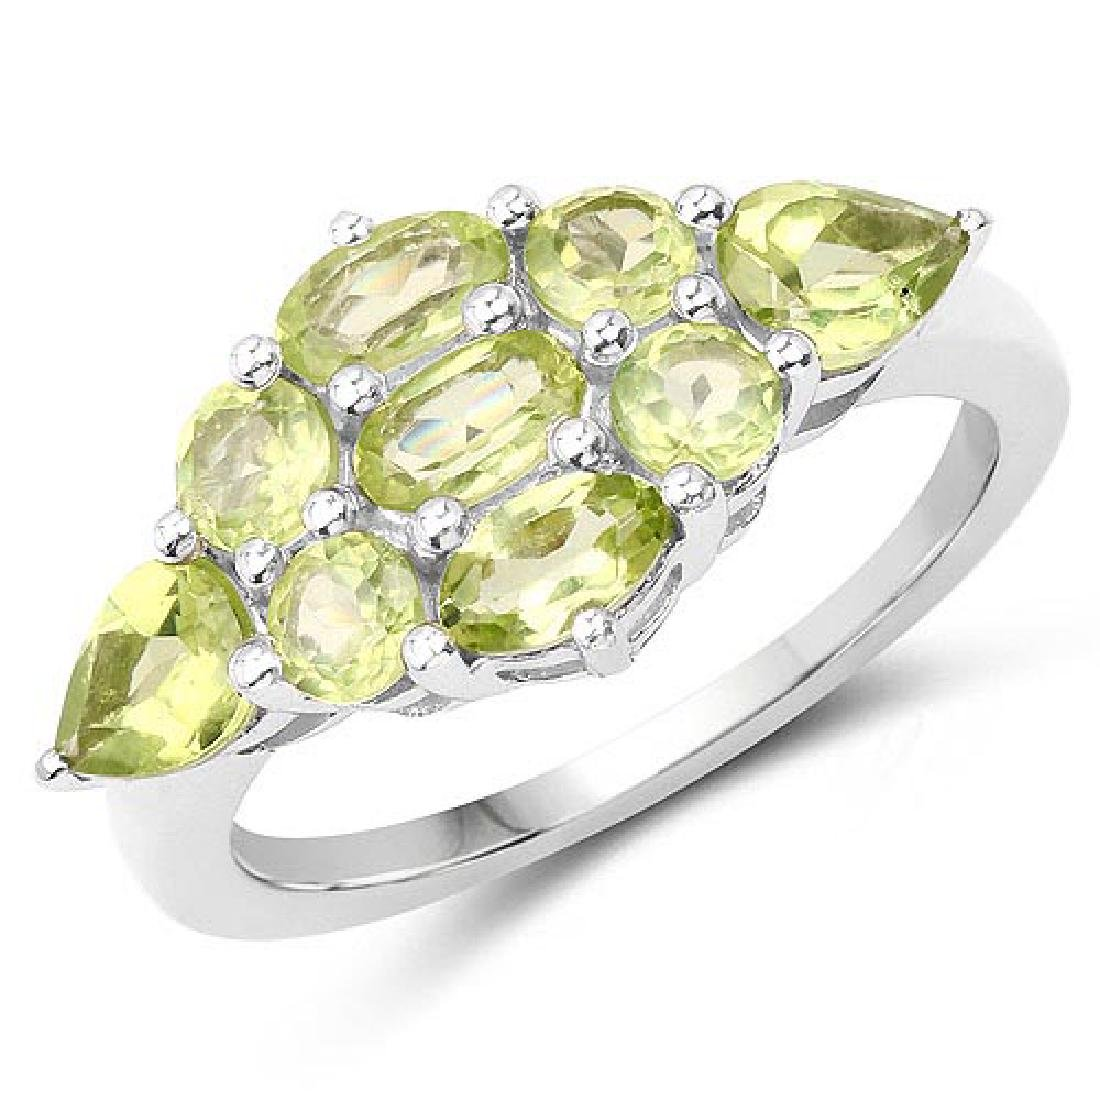 2.48 Carat Genuine Peridot .925 Sterling Silver Ring